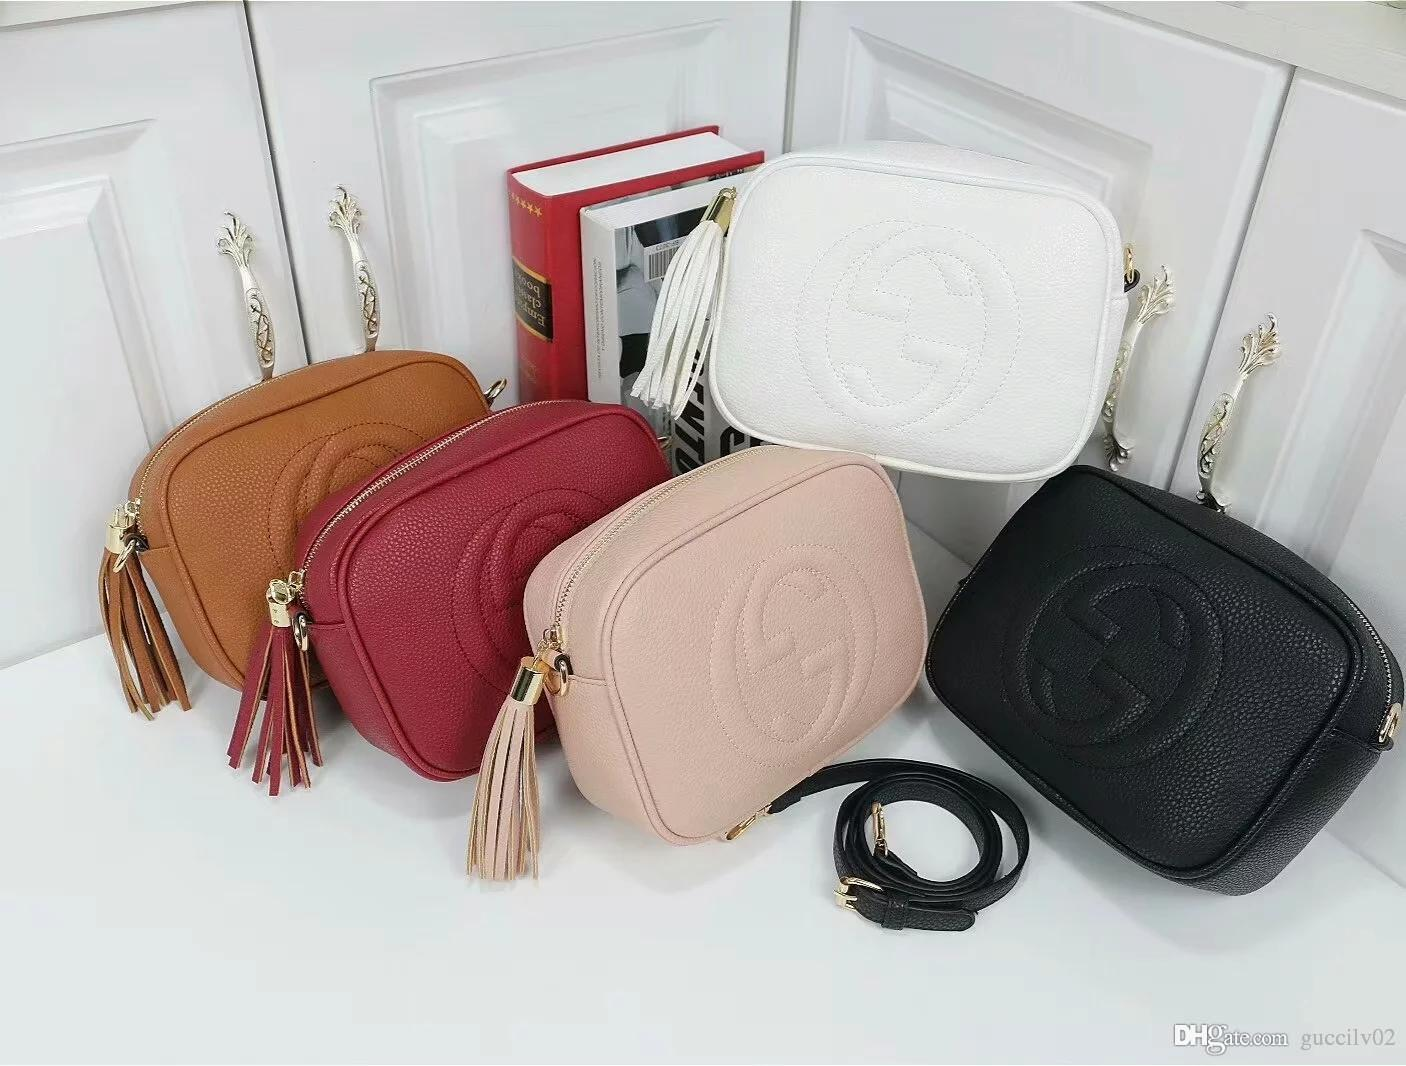 64c63cc07a LOUΙS VUΙTTON Crossbody Bag Handbags Famous Designer Purse High Quality  Female Message Presbyopic Package GUCCΙ Online with  34.15 Piece on  Guccilv02 s ...